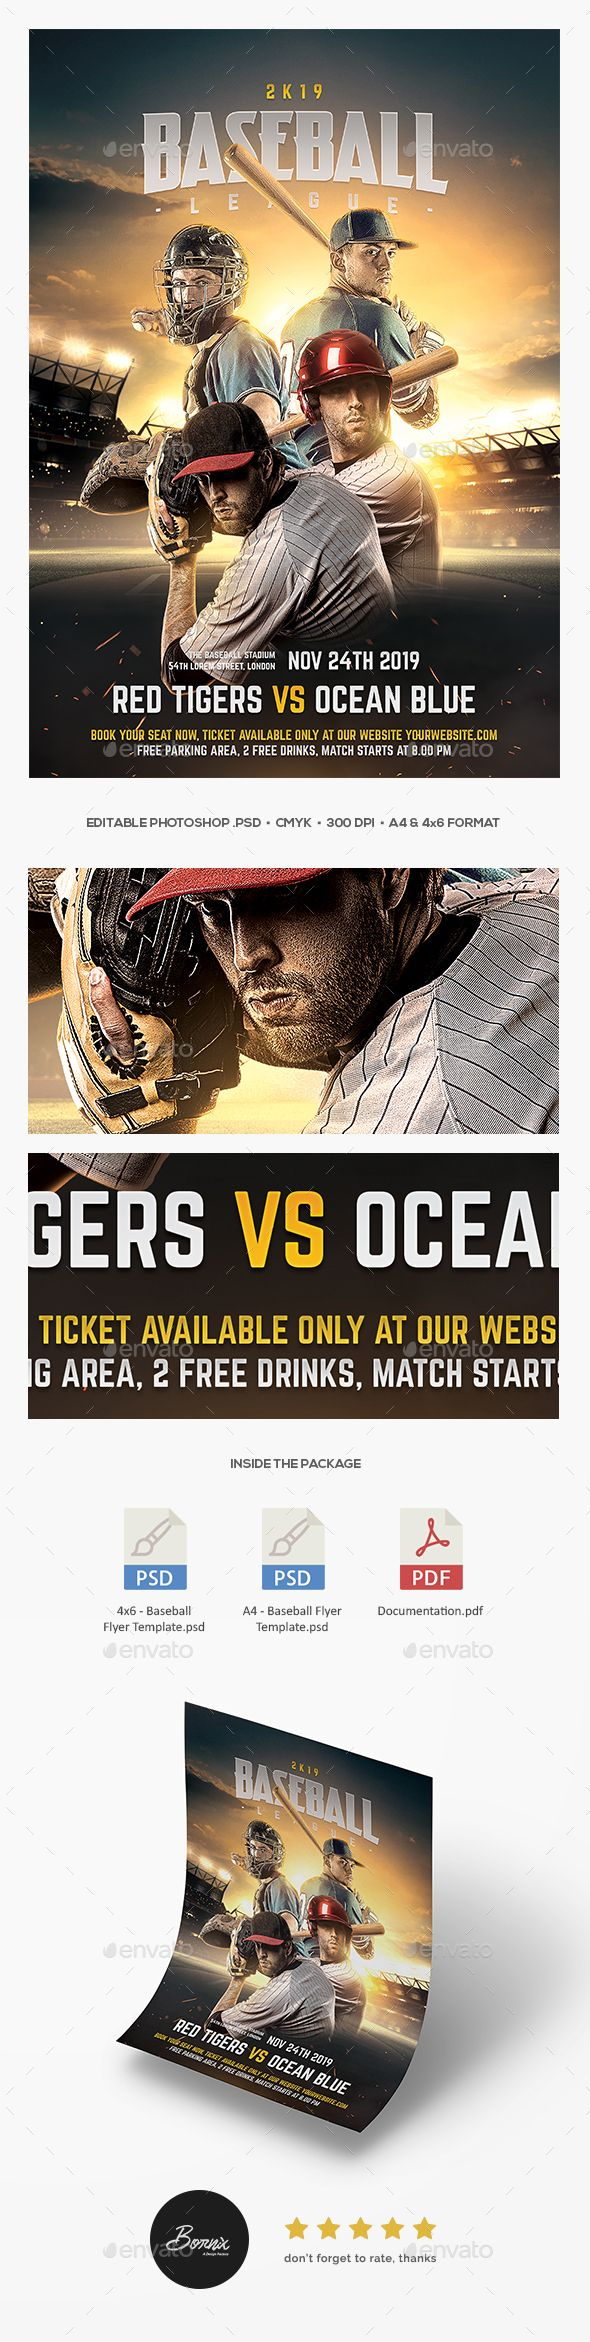 Baseball Flyer — Photoshop PSD #flyer #poster • Available here ➝ https://graphicriver.net/item/baseball-flyer/20620988?ref=pxcr